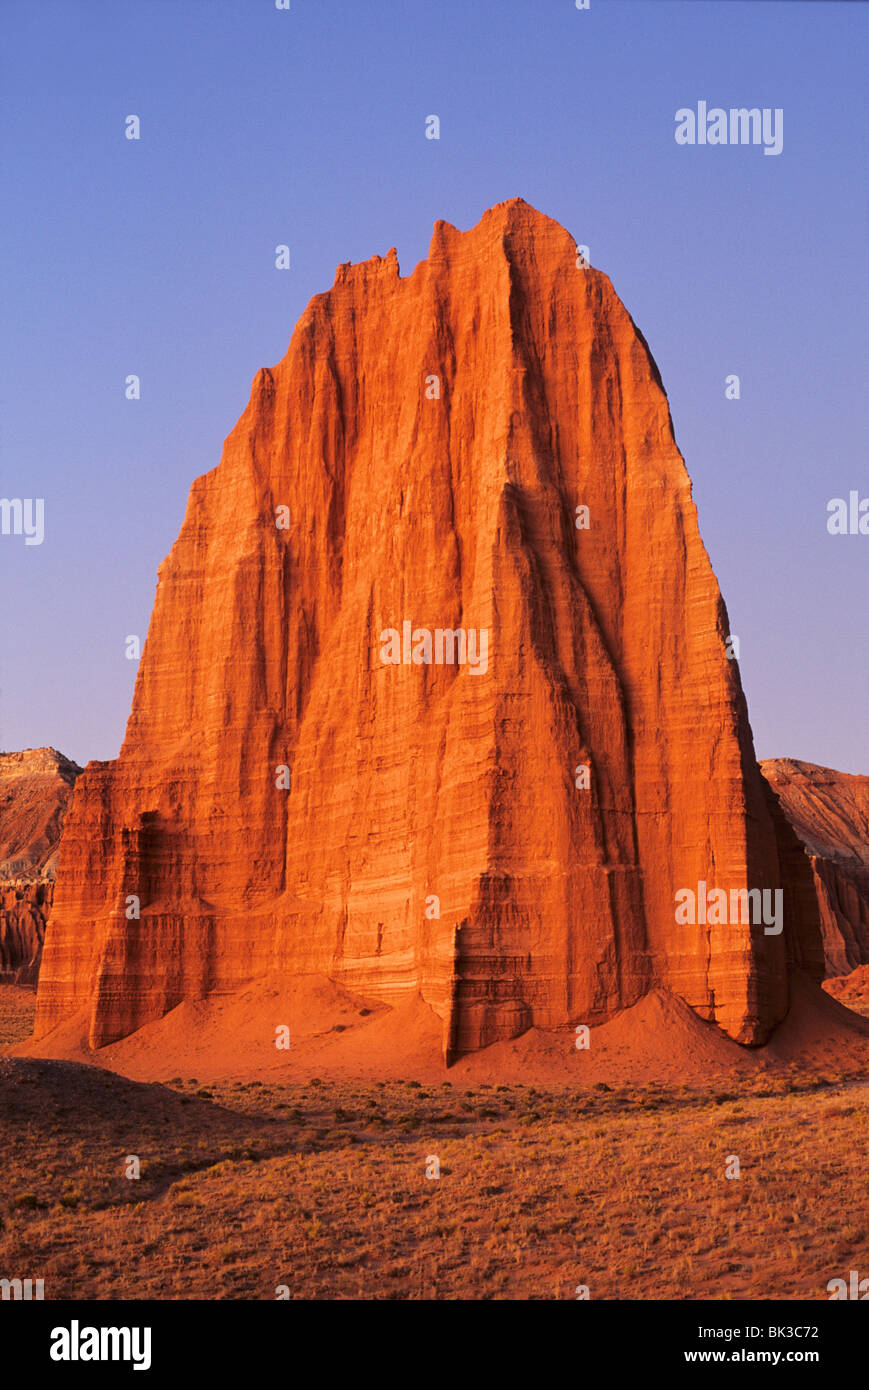 Pre-dawn light illuminates the Temple of the Sun in Cathedral Valley, Capitol Reef National Park, Utah. Stock Photo